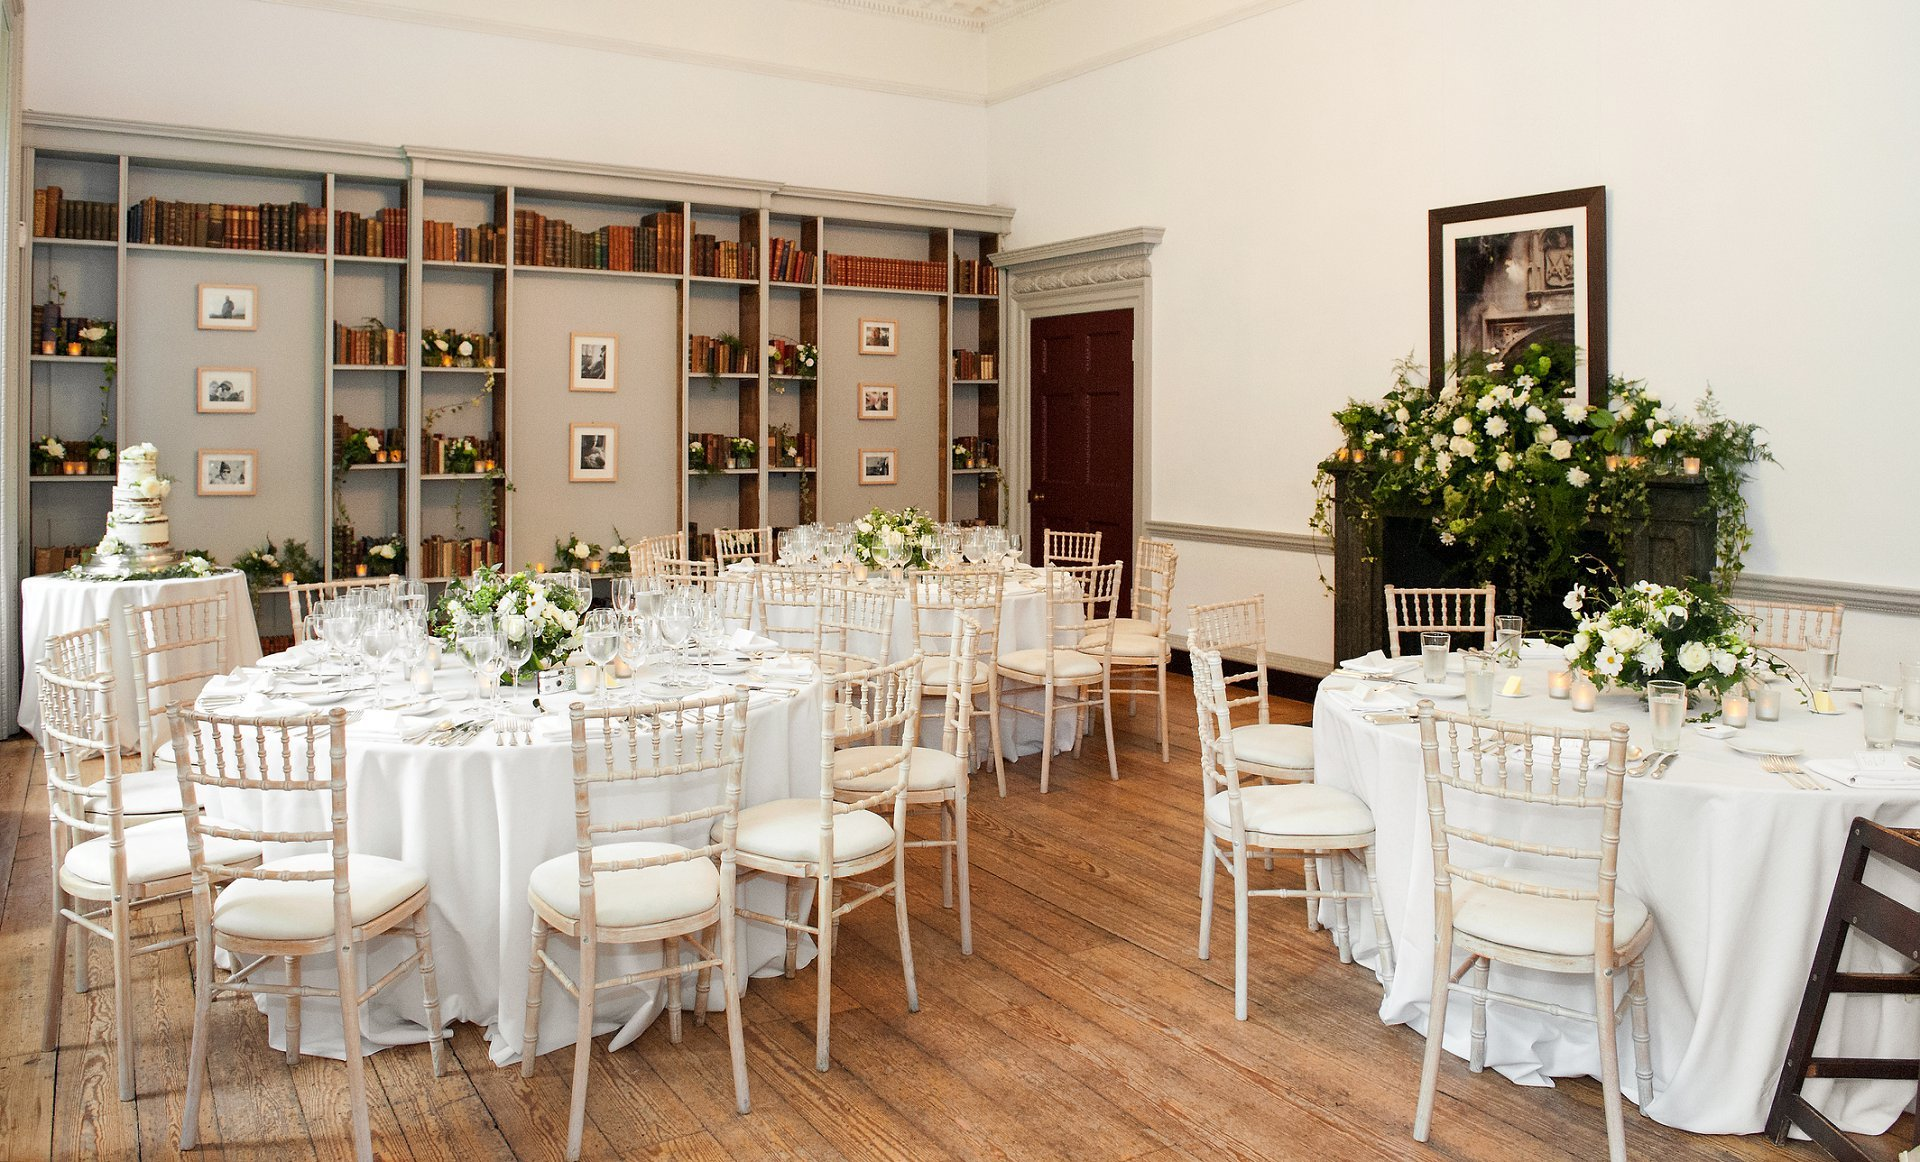 The Bishop Terrick's Drawing Room laid for a wedding breakfast for 30 guests at Fulham Palace